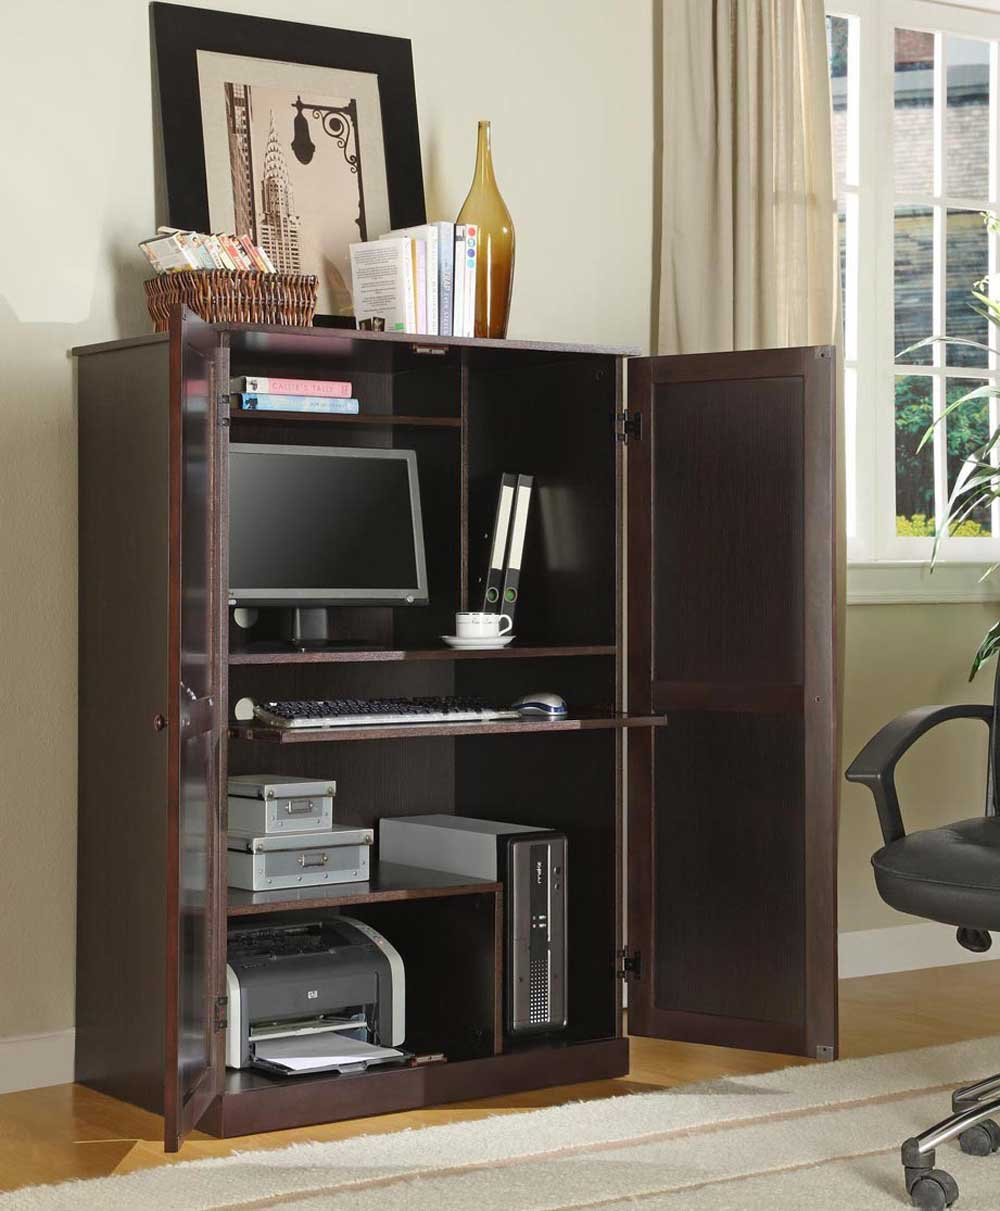 ikea corner computer armoire office furniture. Black Bedroom Furniture Sets. Home Design Ideas